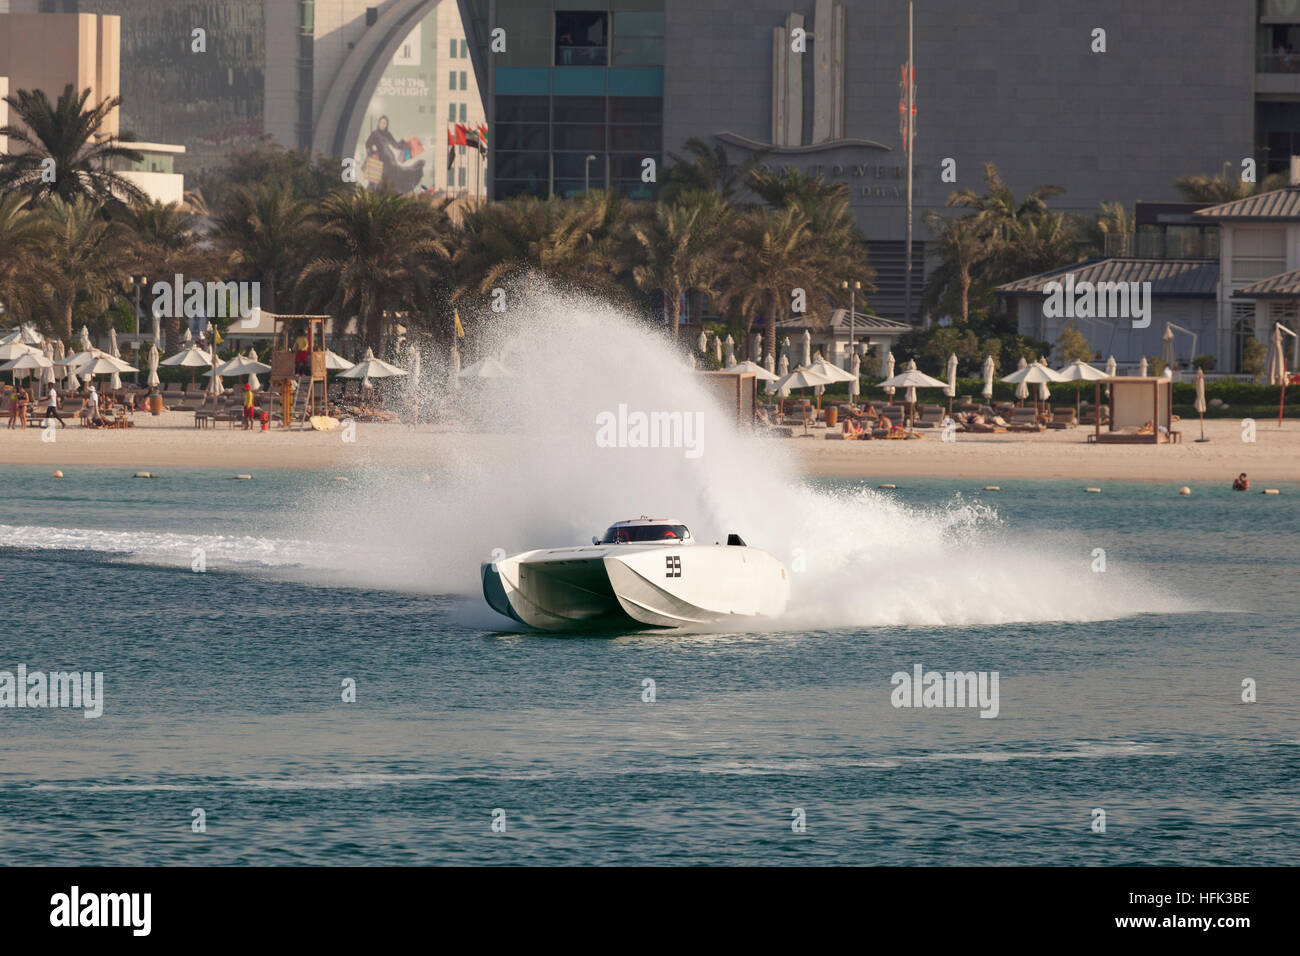 White racing boat at the Powerboat Championship 2016 in Abu Dhabi - Stock Image